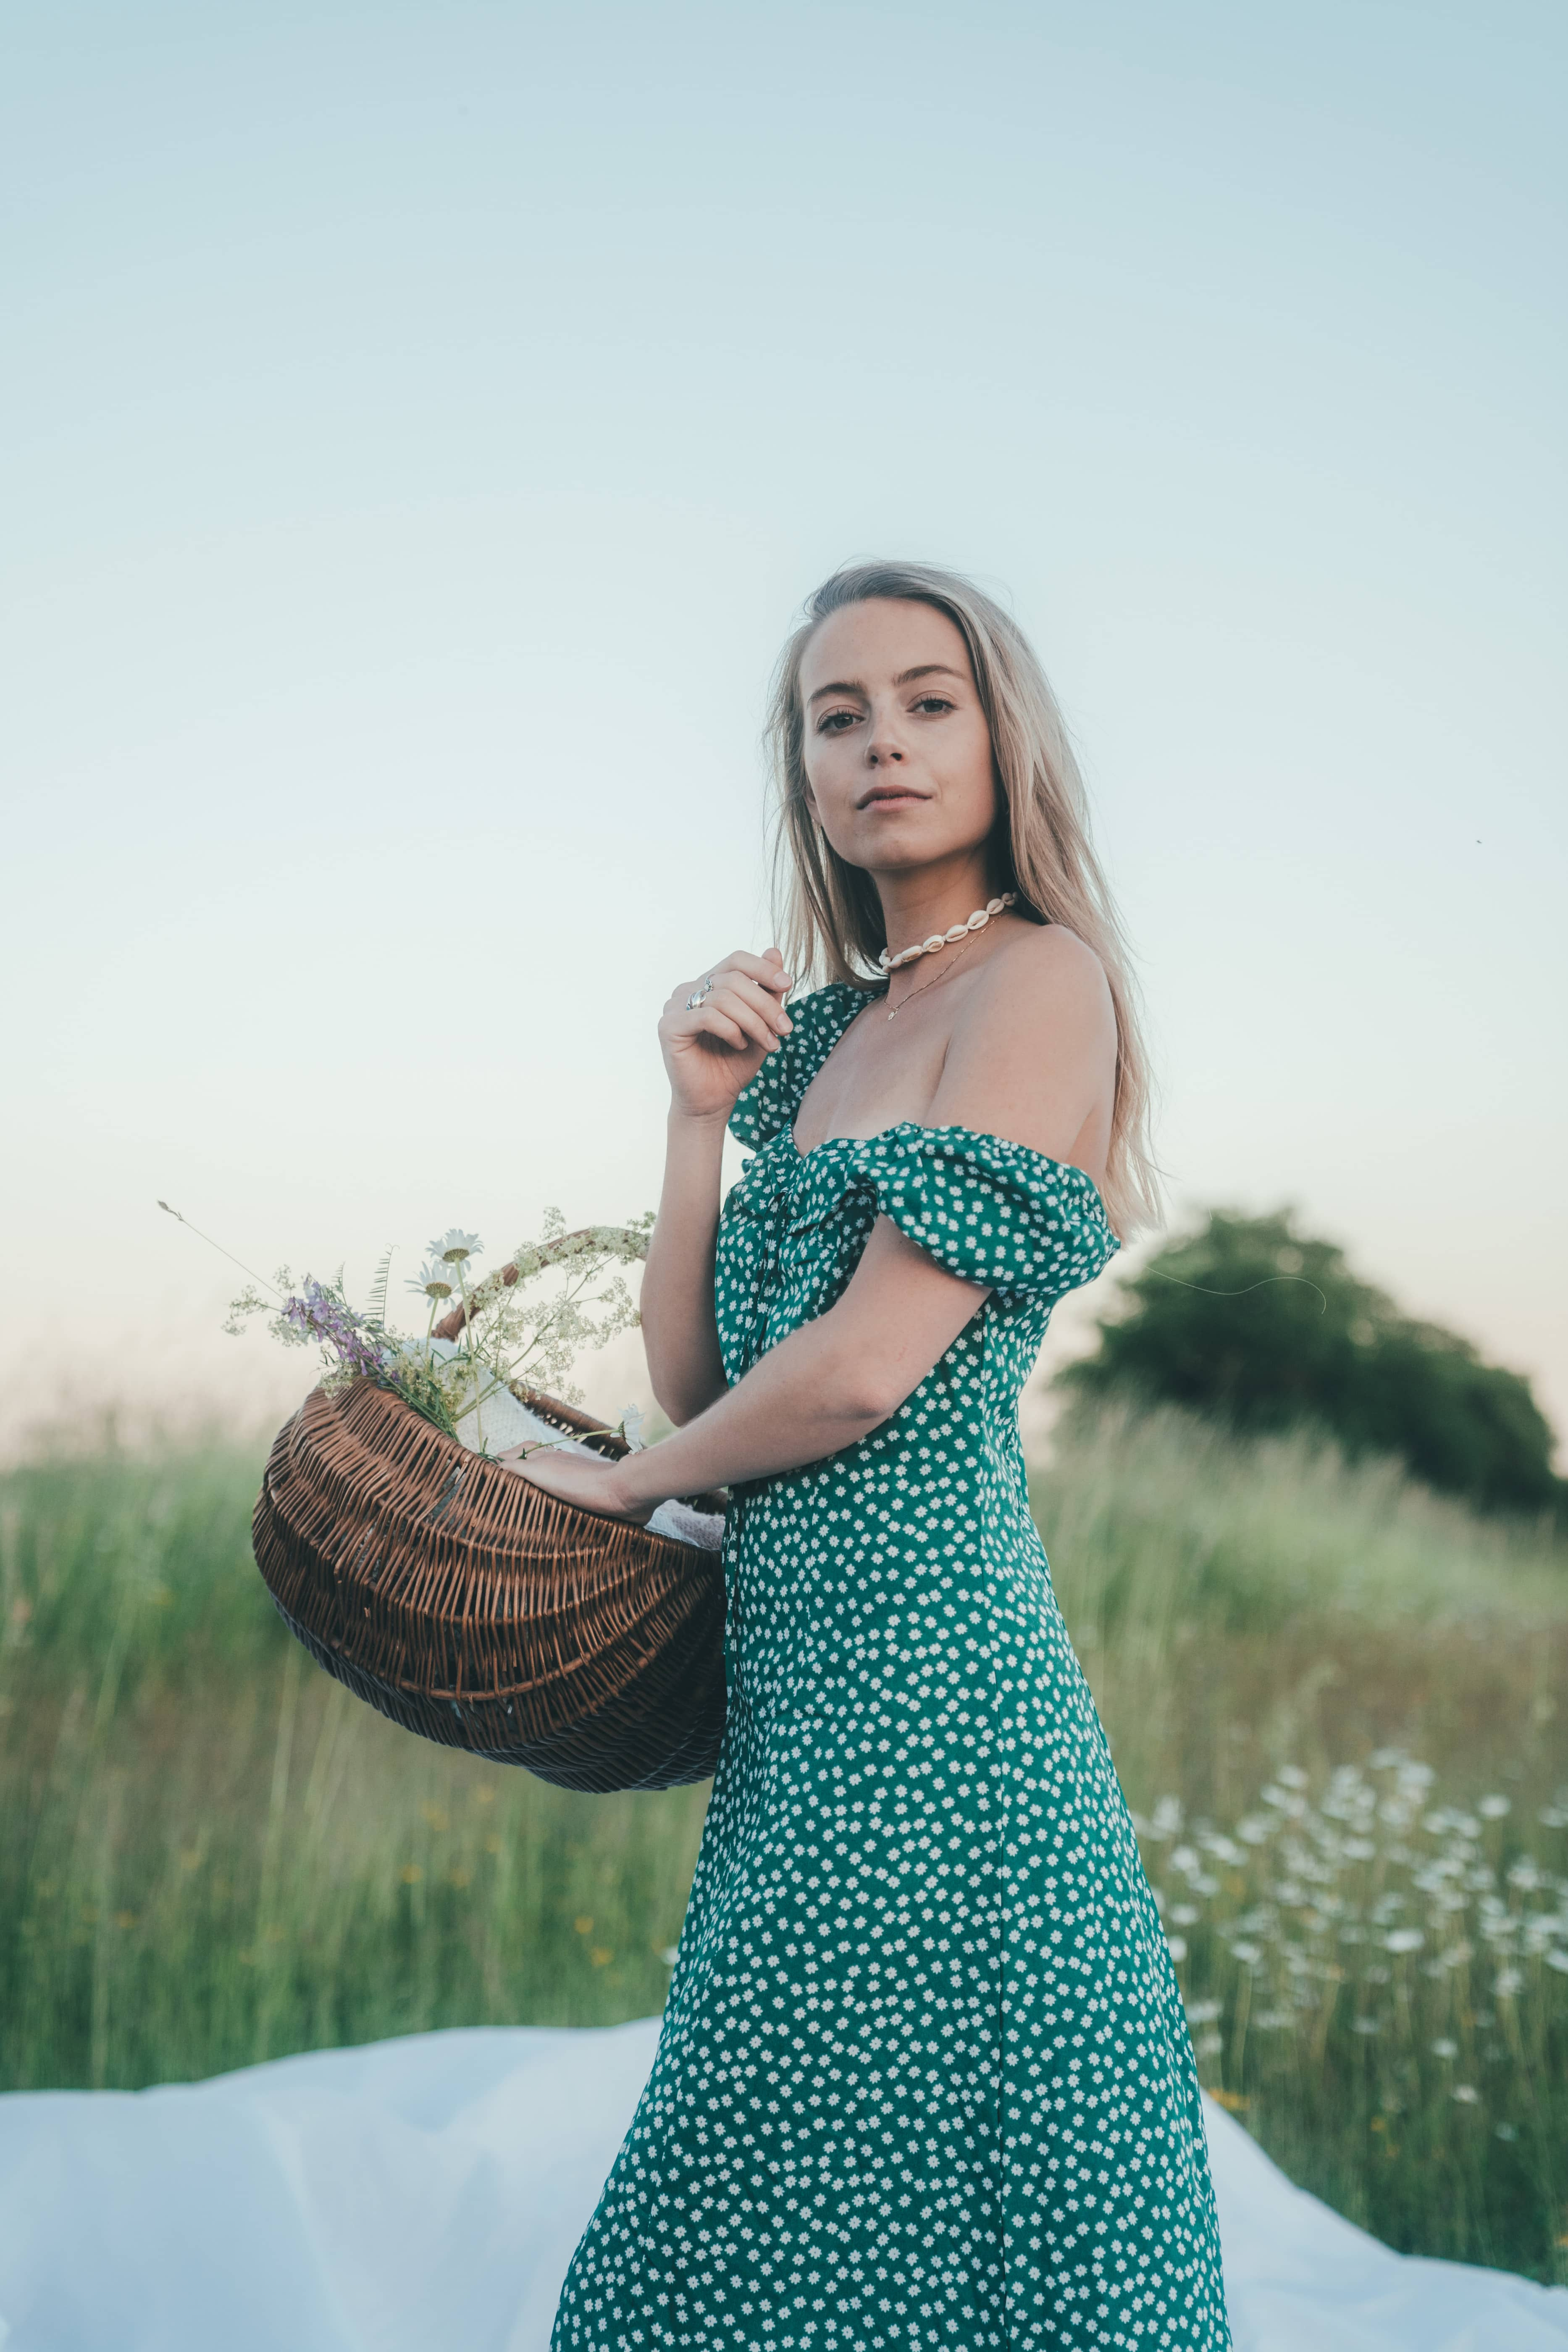 women in fashionable green dress with white dots carrying a basket dull of flowers